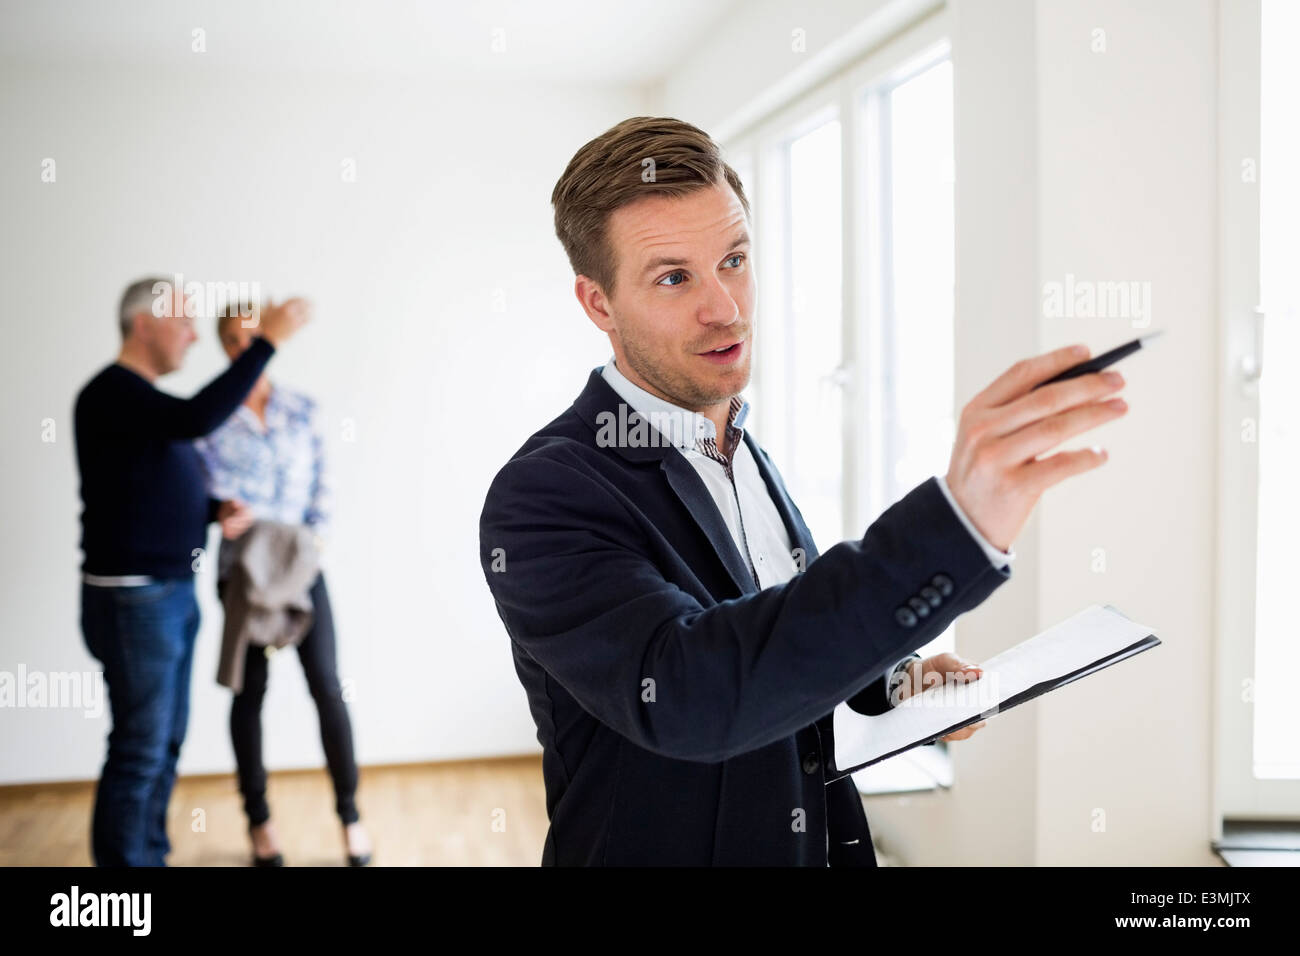 Real estate agent examining house with couple discussing in background - Stock Image